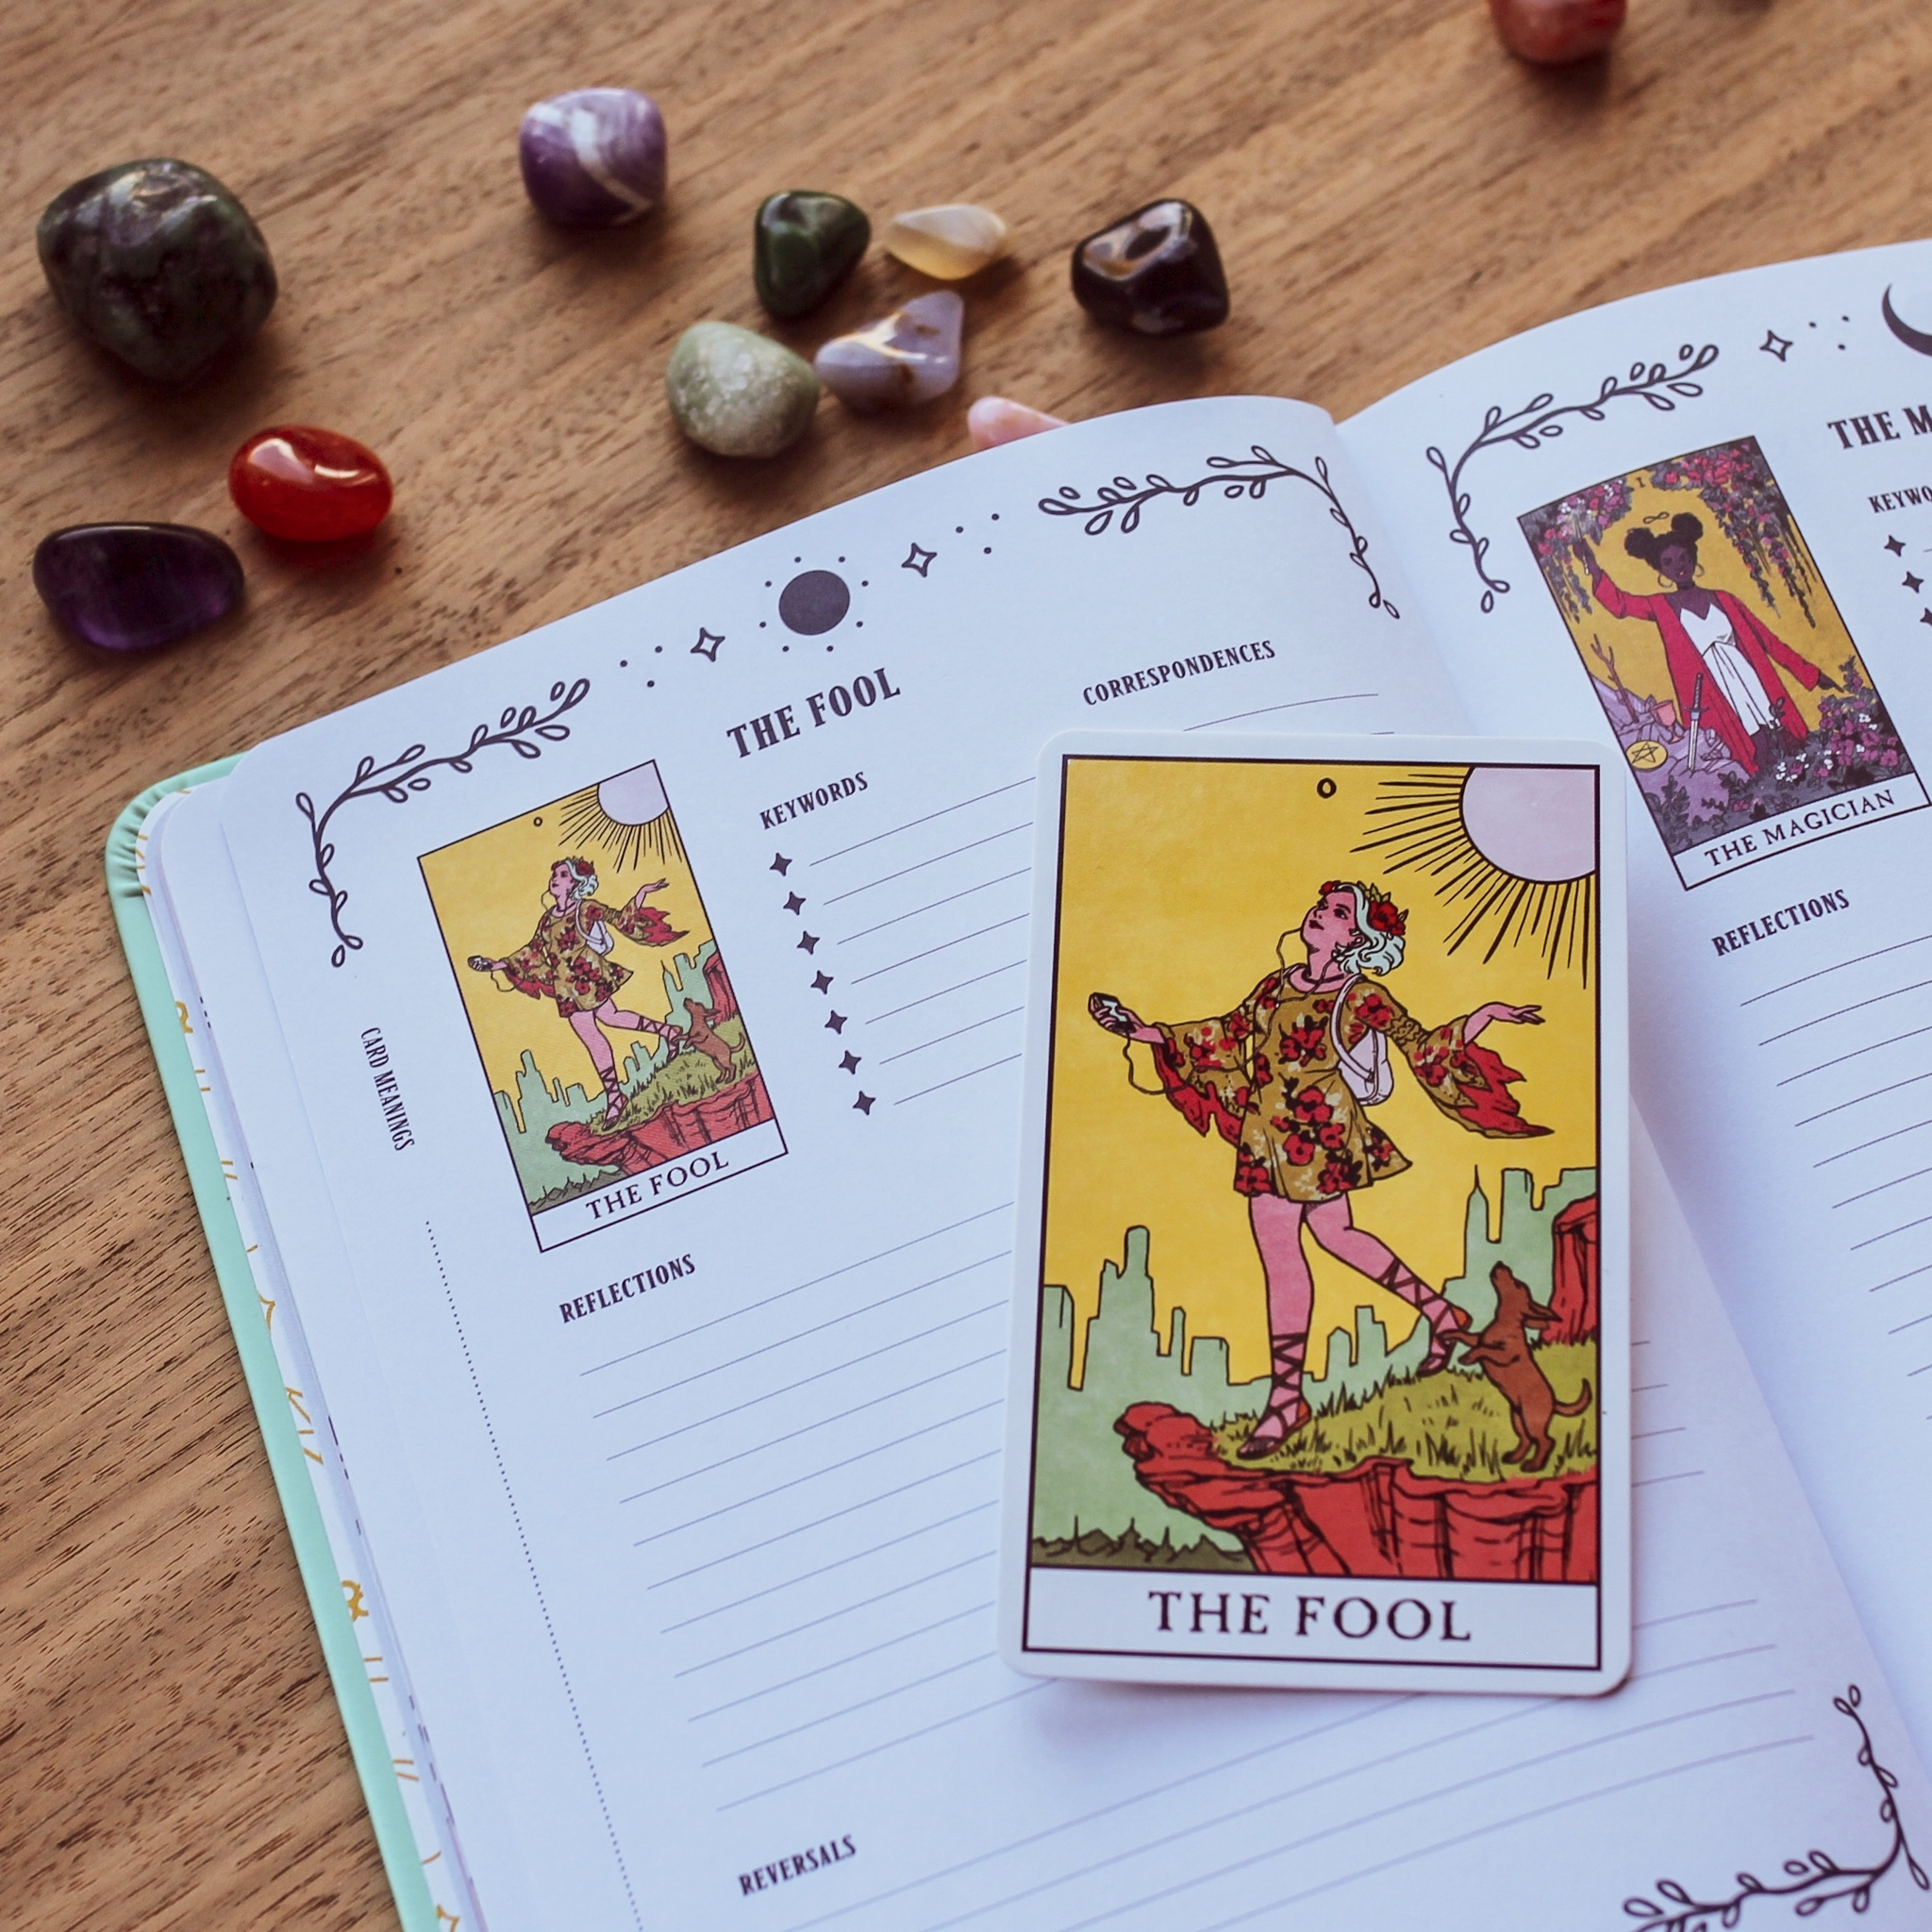 The Fool from Modern Witch Tarot, with the Modern Witch Tarot Journal